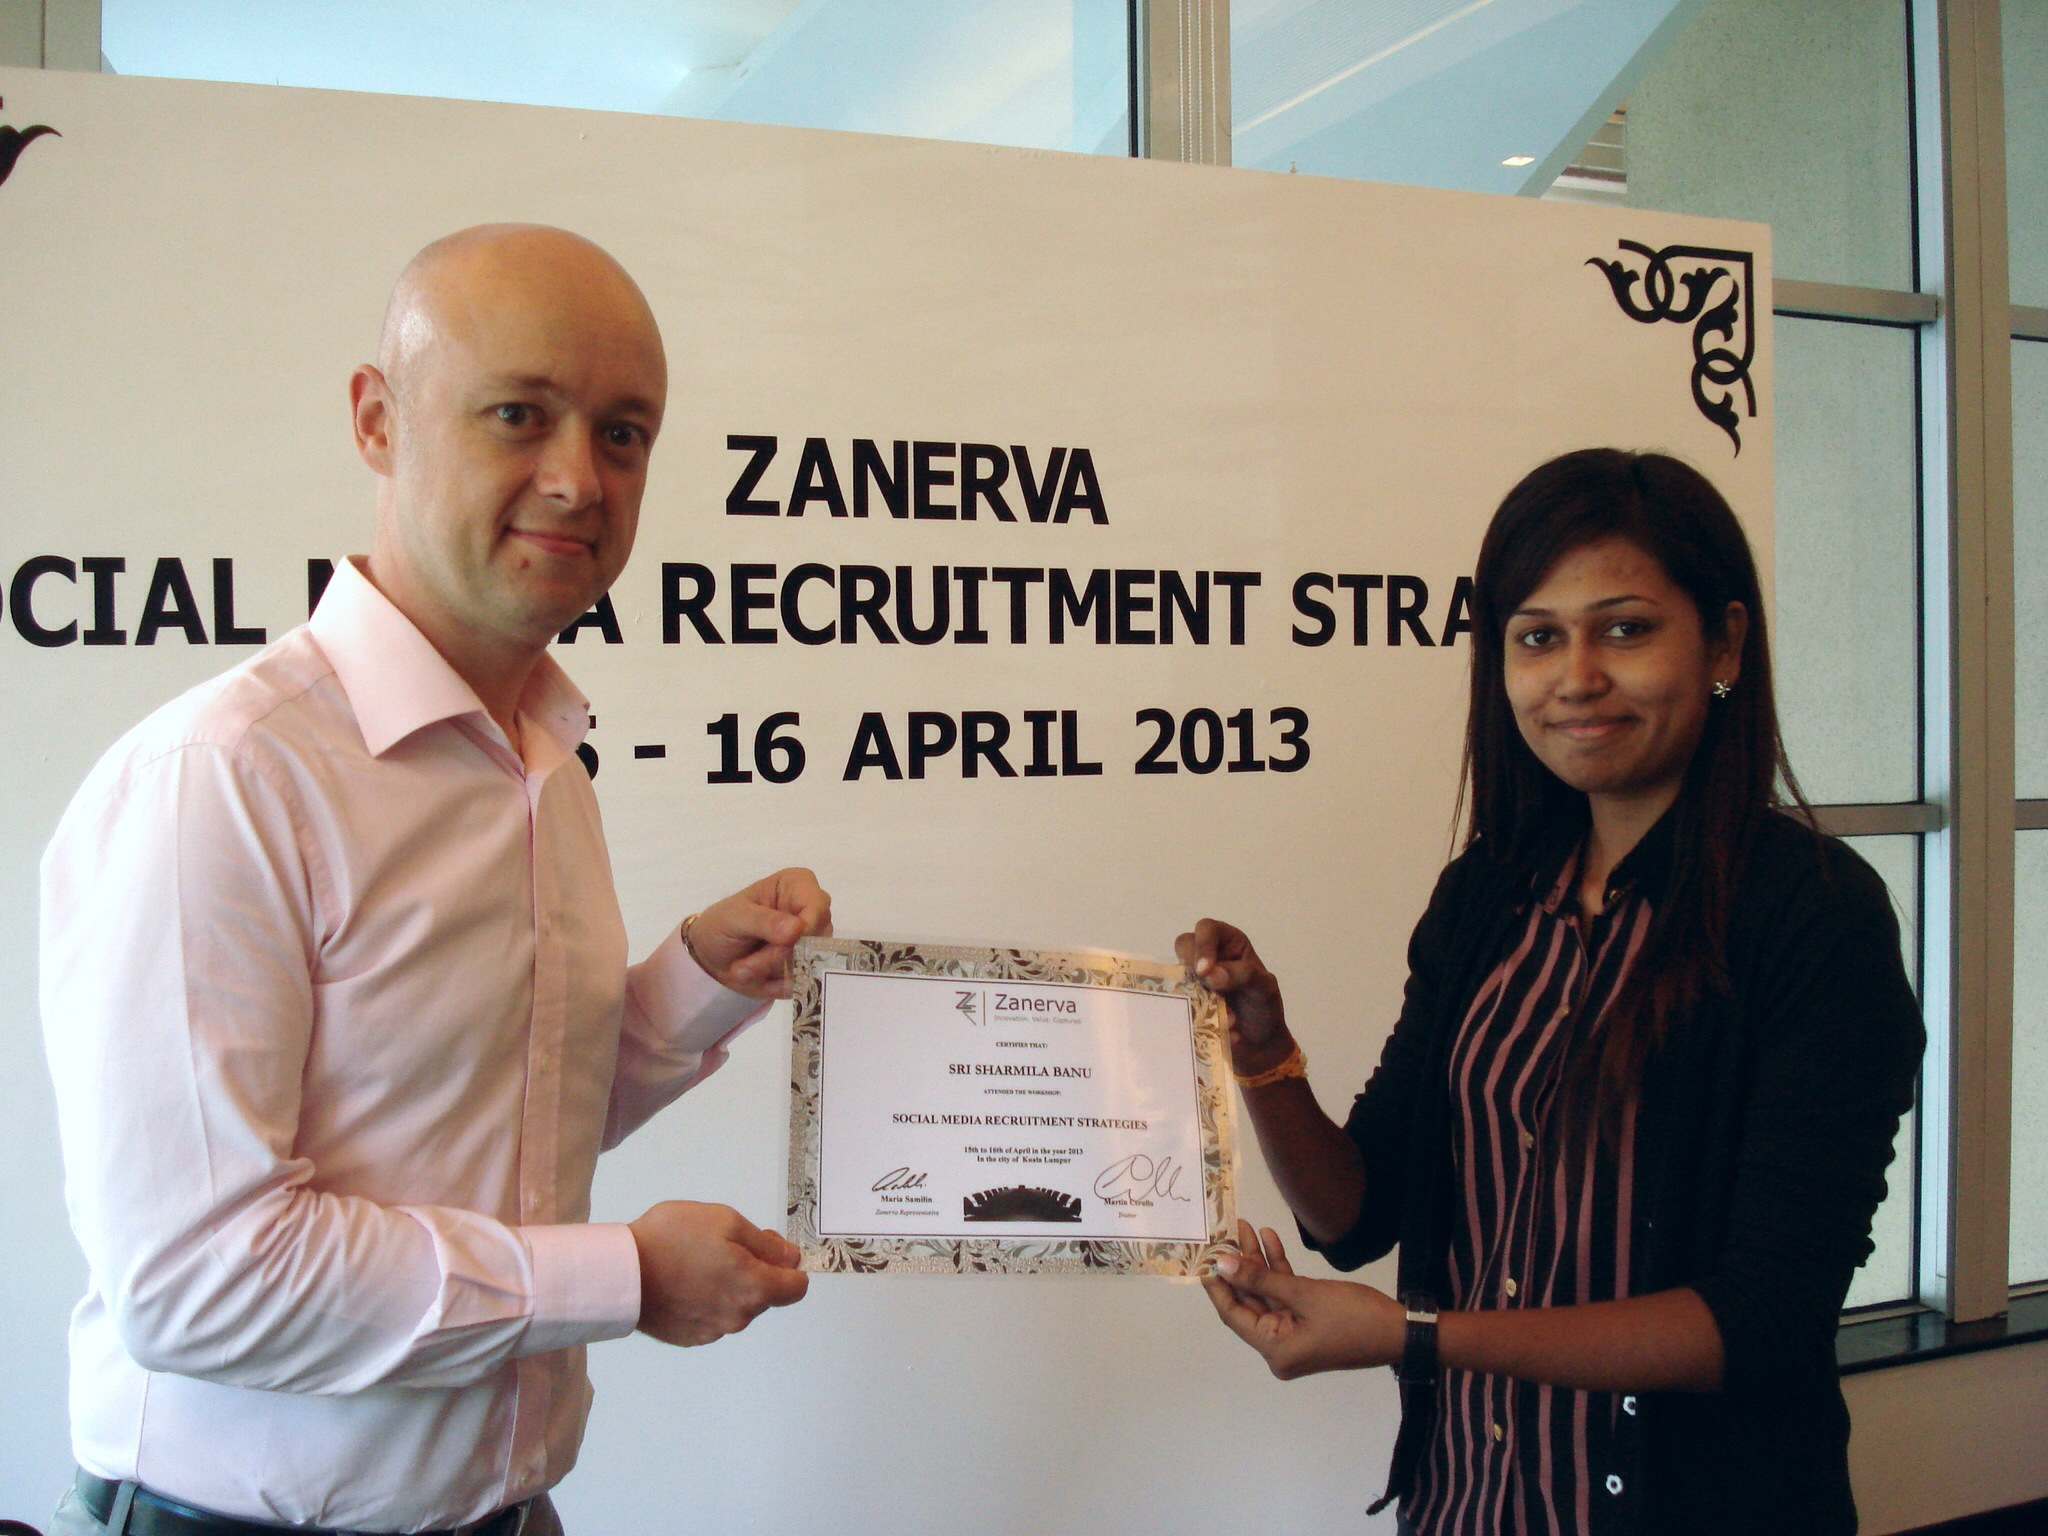 Sri Sharmilla Banu, Talent Acquisition Specialist at AUO Sunpower Sdn Bhd  receiving her certificate of participation for attending the Social Media Recruitment Strategies Workshop in Kuala Lumpur